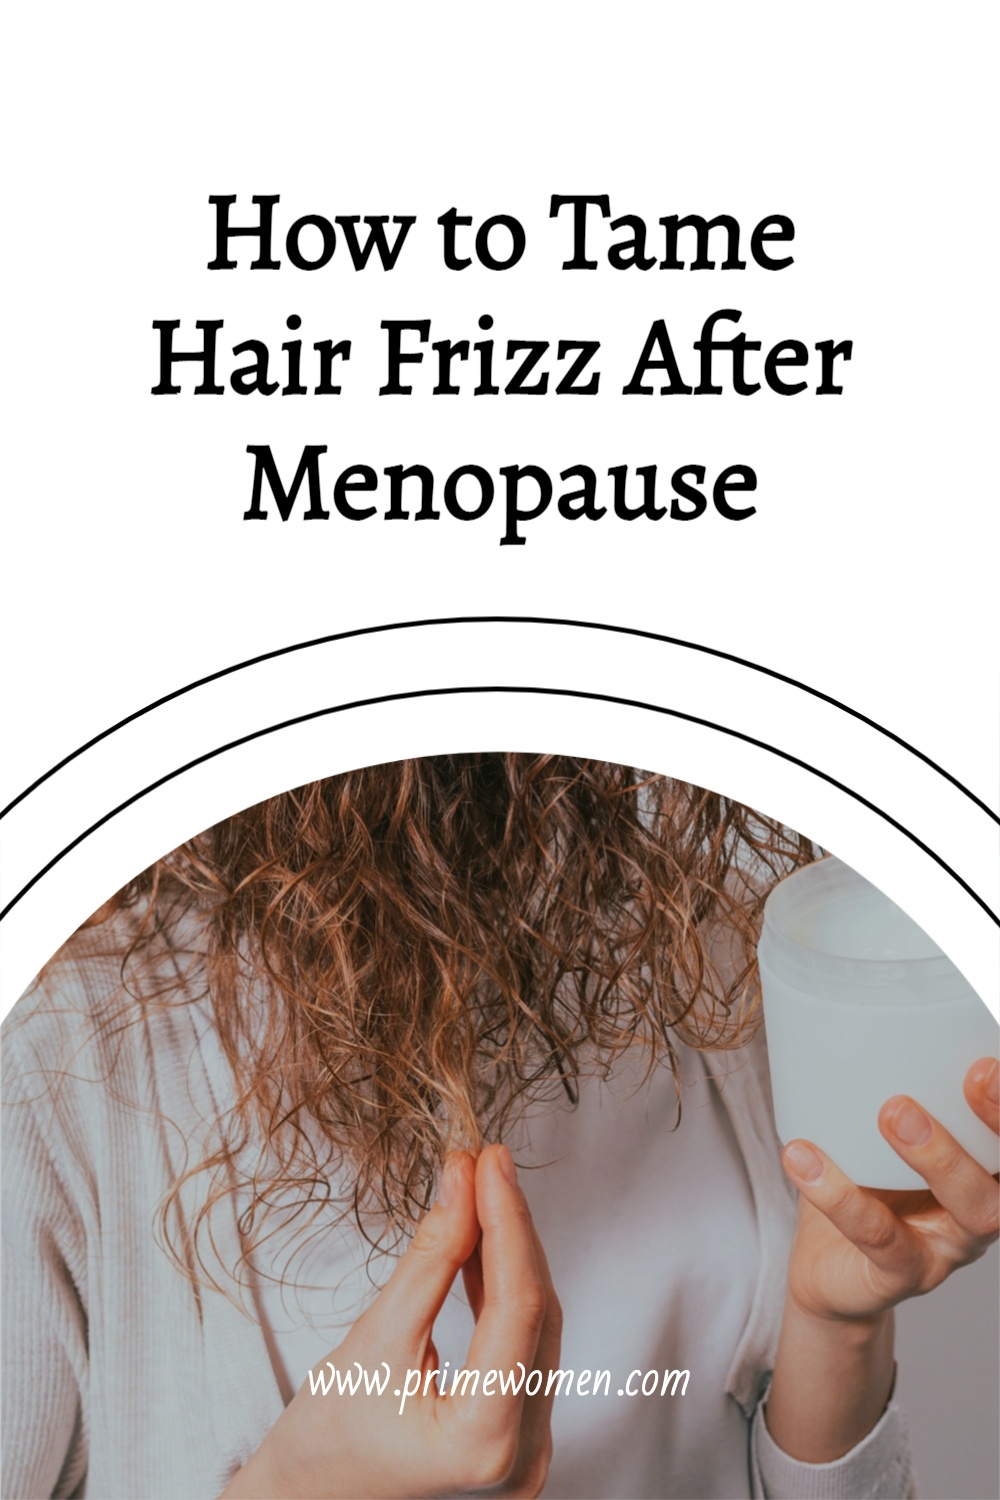 How-to-Tame-Hair-Frizz-After-Menopause